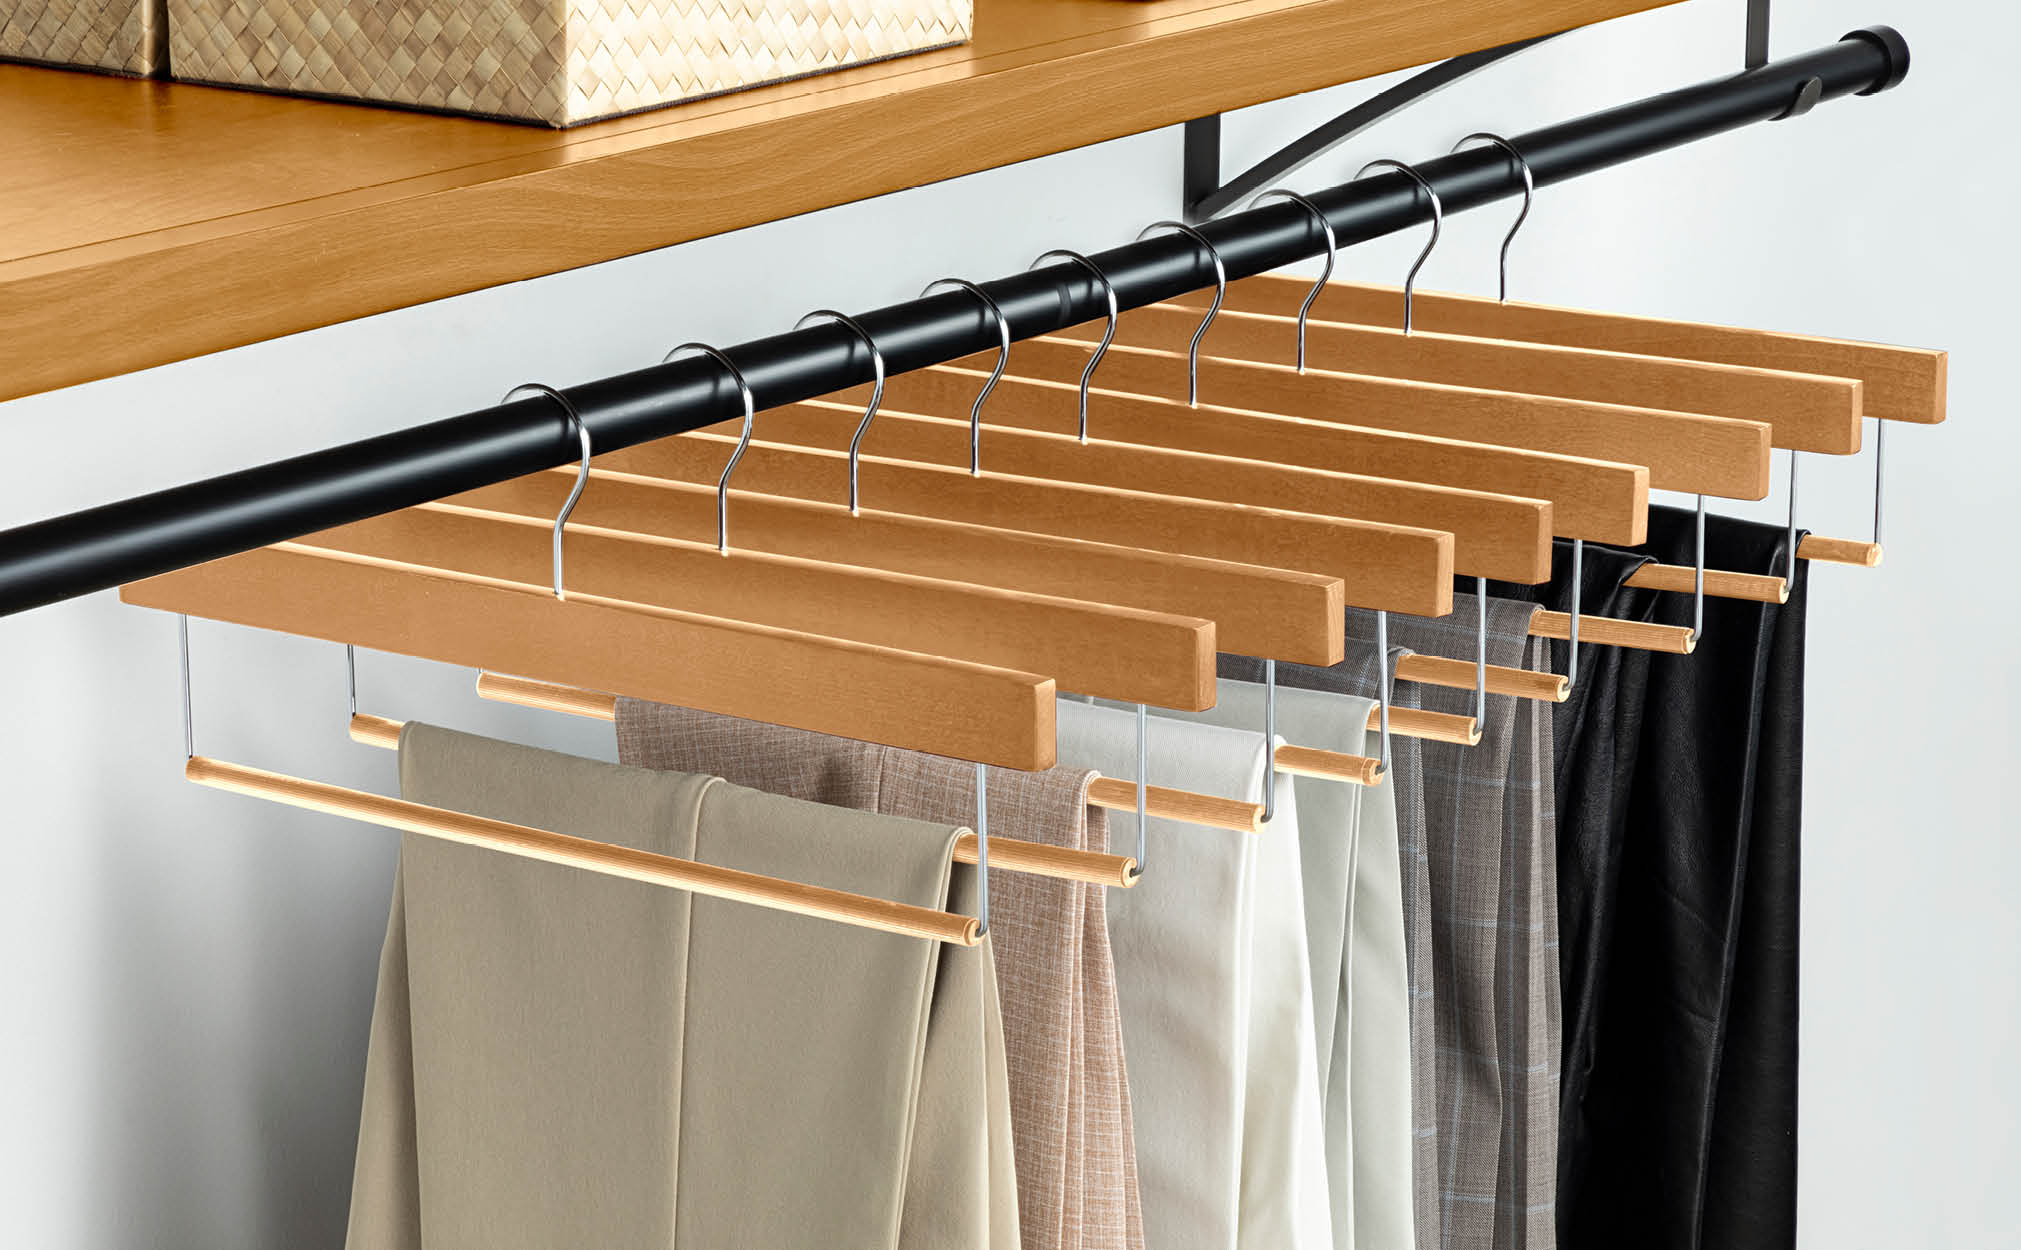 10-Pack Natural Wooden Pant Hanger with Hanging Bar